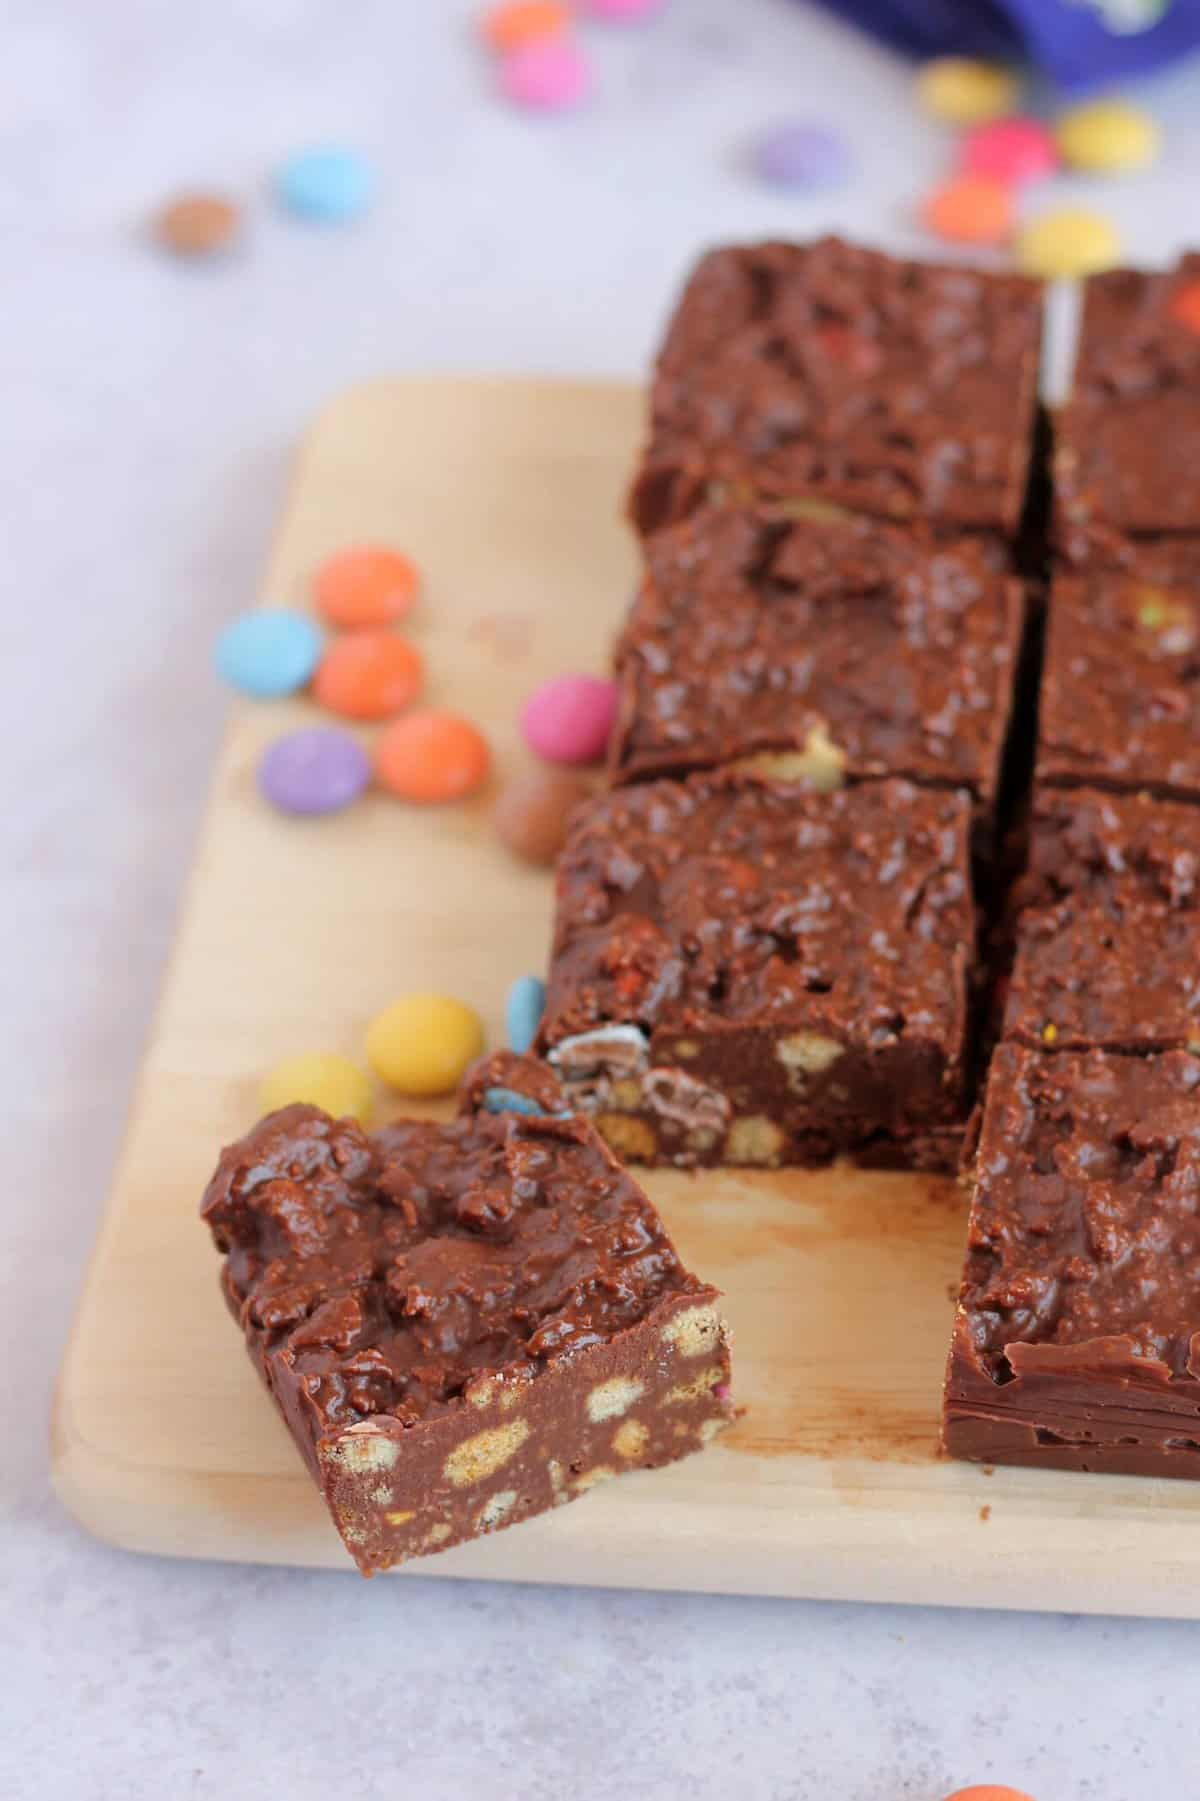 A close up picture of the biscuit cake, showing the chocolate, biscuit and candy layers.